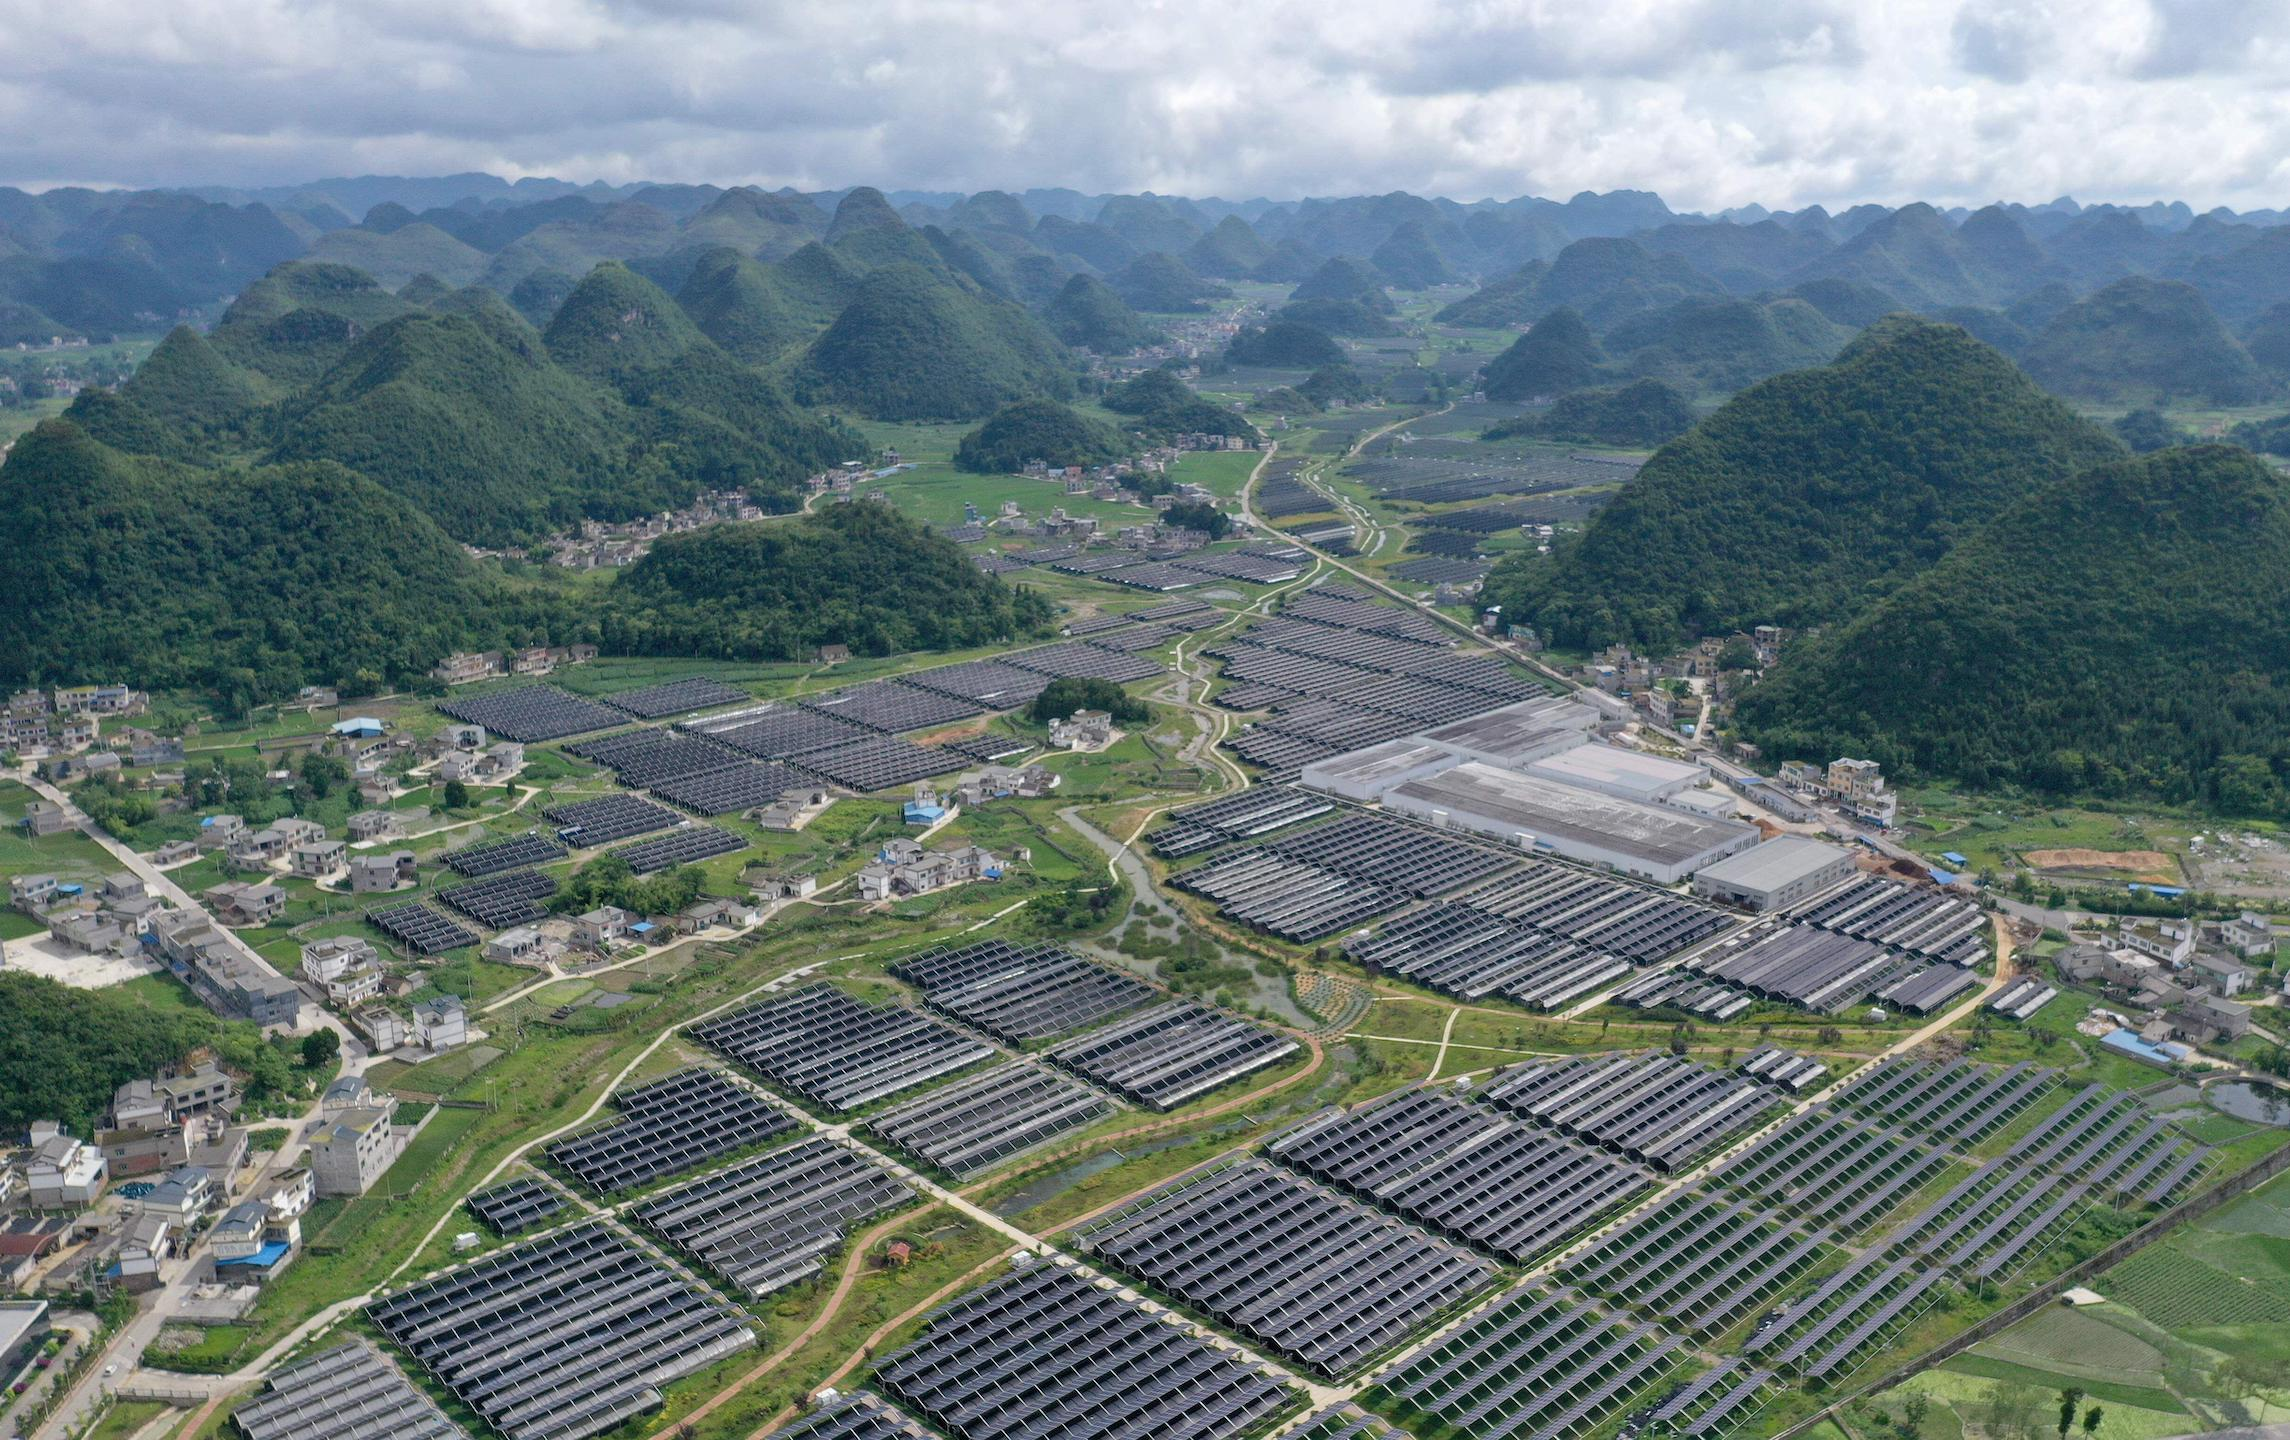 Guizhou province, southern China. Solar power made up just 0.89% of the province's energy mix in 2019 (Image: Liu Chaofu / Alamy)